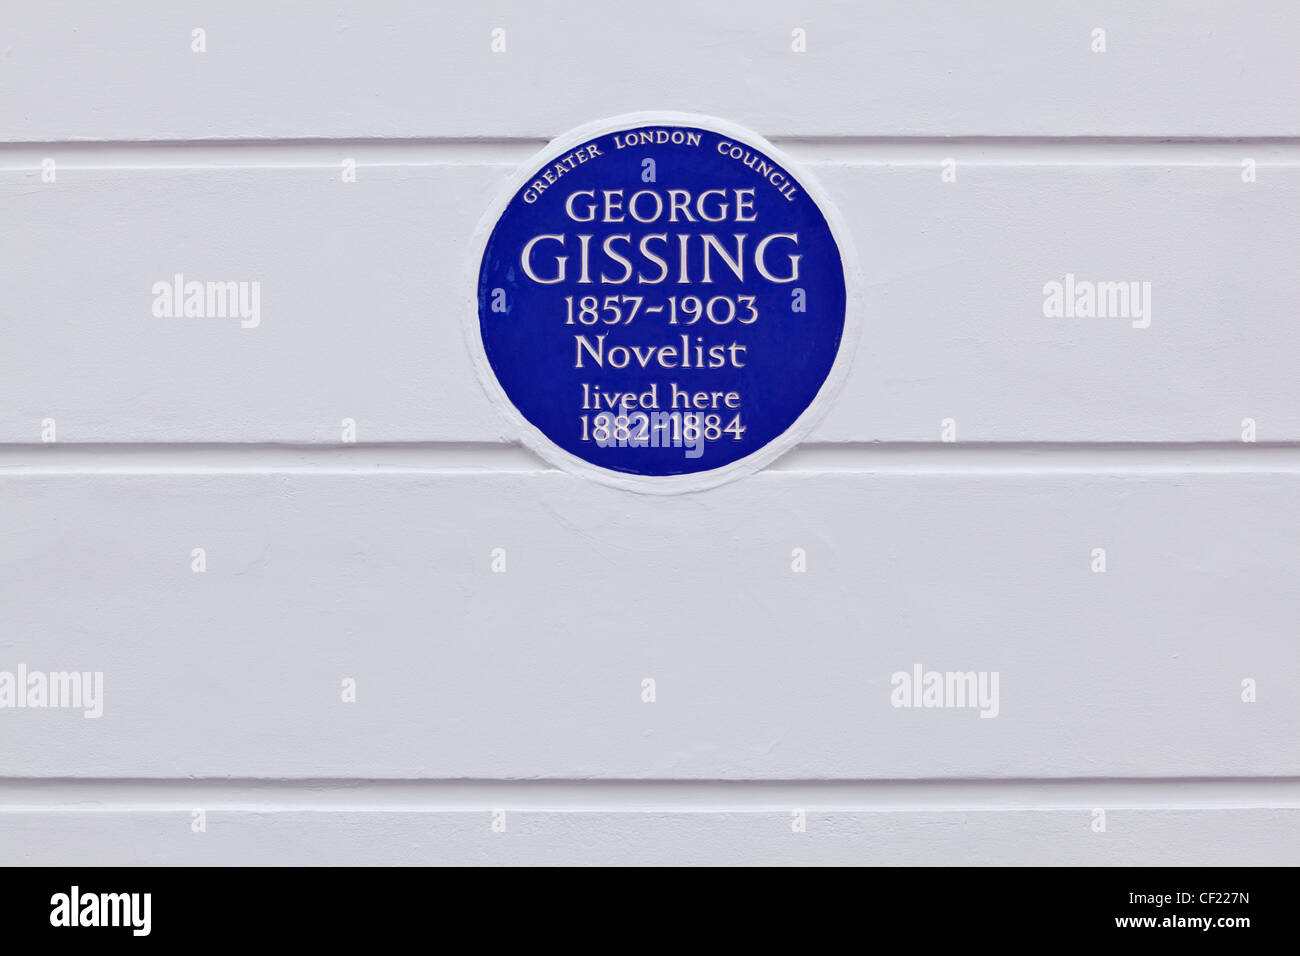 A Greater London Council (GLC) plaque on the wall of 33 Oakley Gardens celebrating that novelist George Gissing - Stock Image